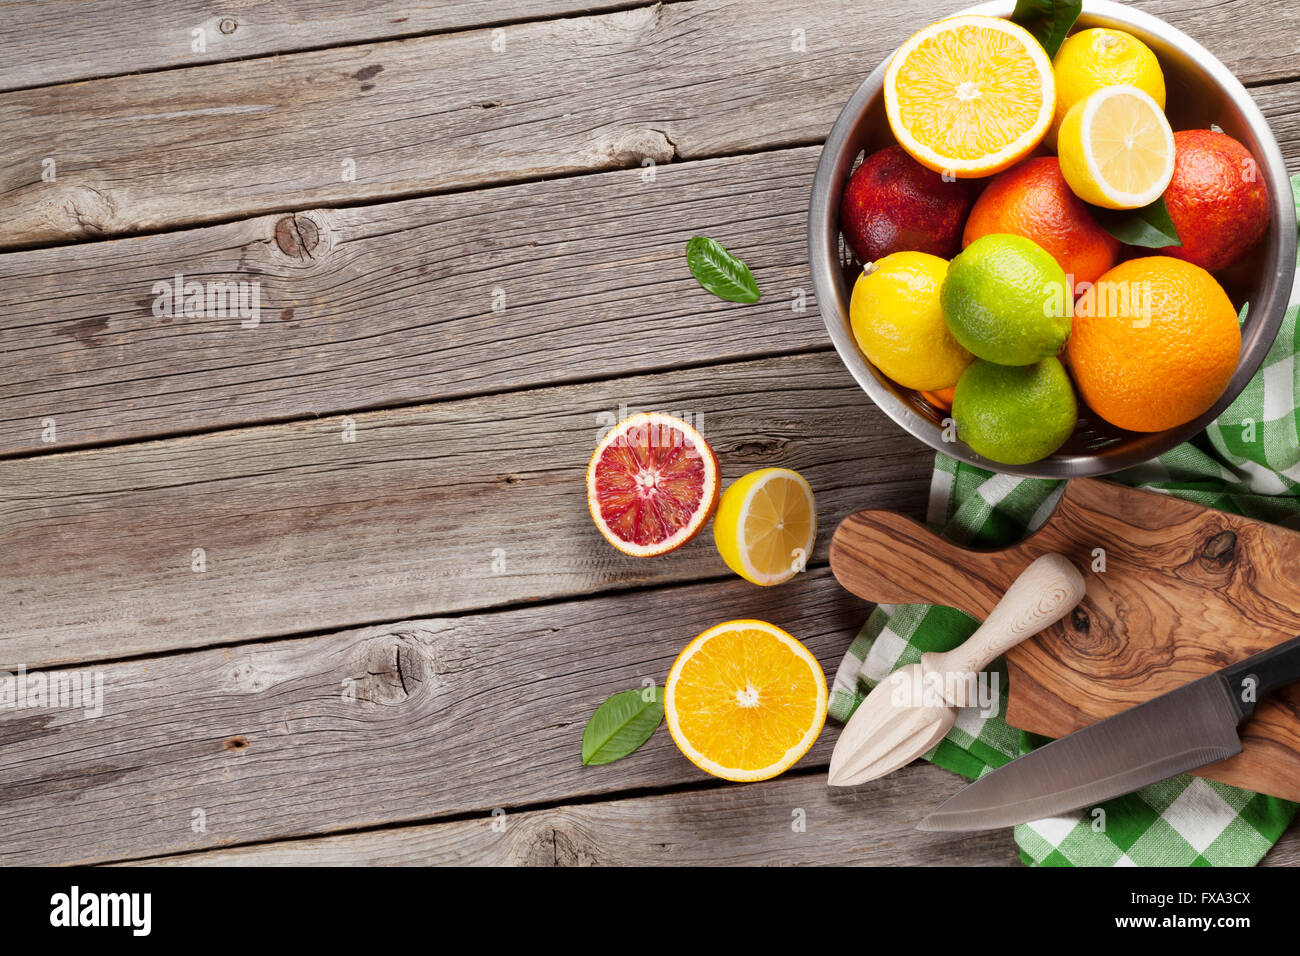 Table Top Fruit Basket Fresh Citrus Fruits In Colander On Wooden Table Top View